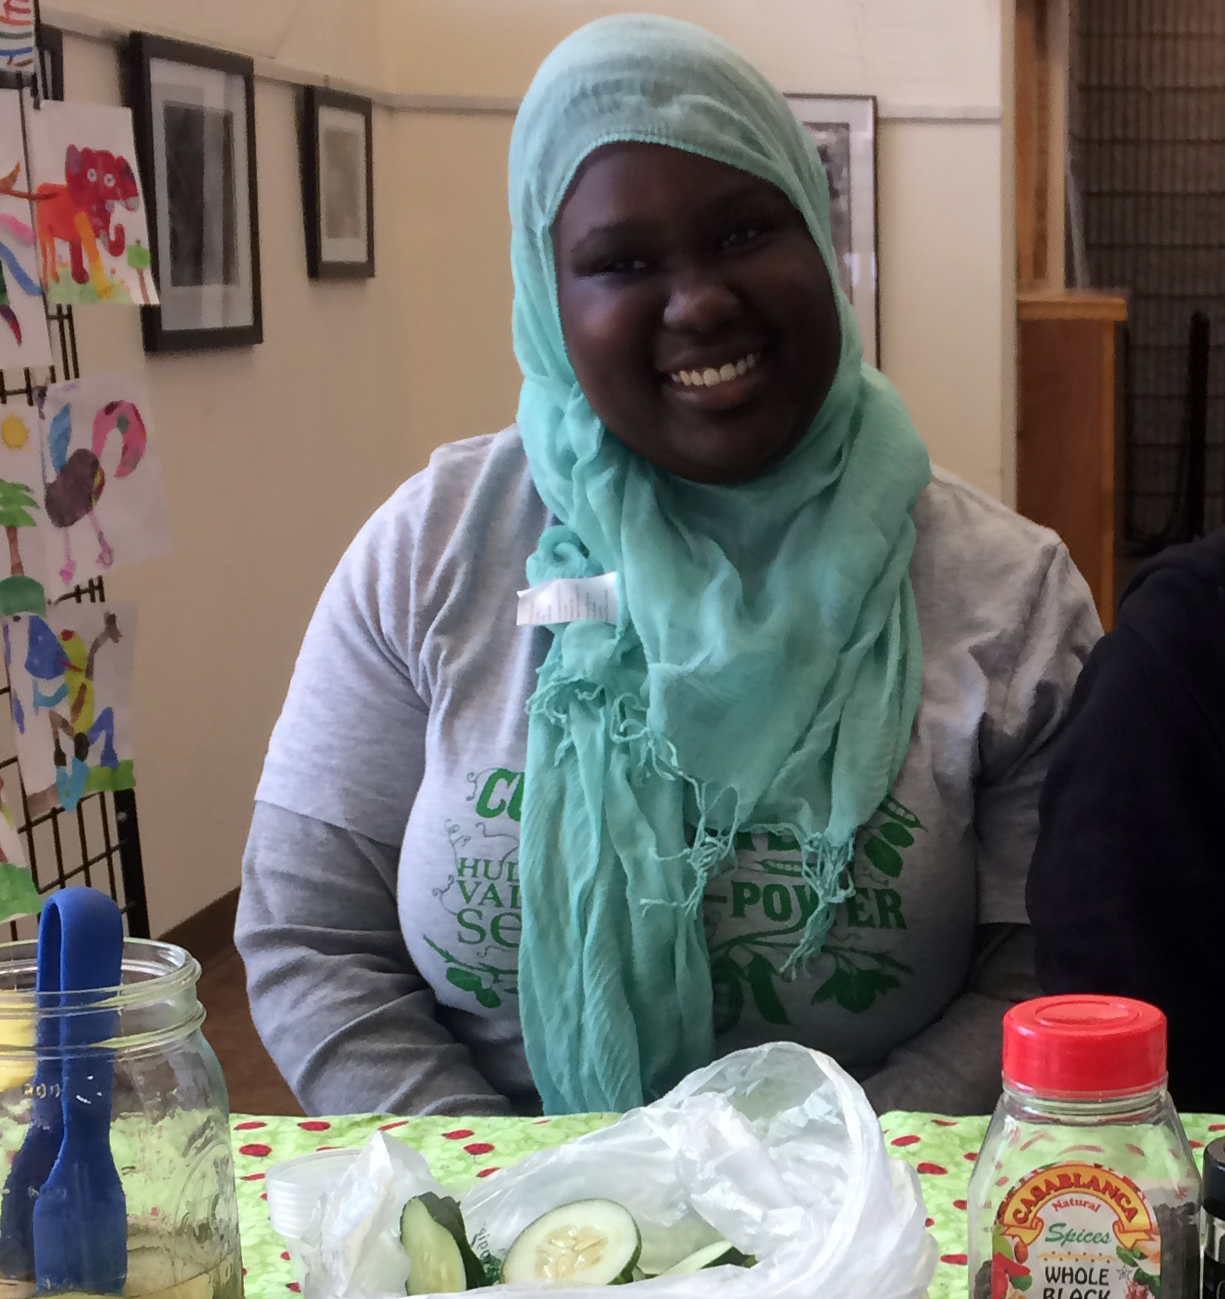 """Mariama Ceesay  is an 18 year old Green Teen """"next stepper"""" happily working for Hudson Valley Seed. She loves working with kids, helping people, and she even has a garden of her own of which she is very proud. Although she describes herself as """"very clumsy,"""" she works hard to make to make the world a better place. Throughout her senior year she volunteered frequently with the National Honor Society. Now that she has graduated Beacon High School, she is planning to major in biology, and is figuring out what to do with the rest of her life."""